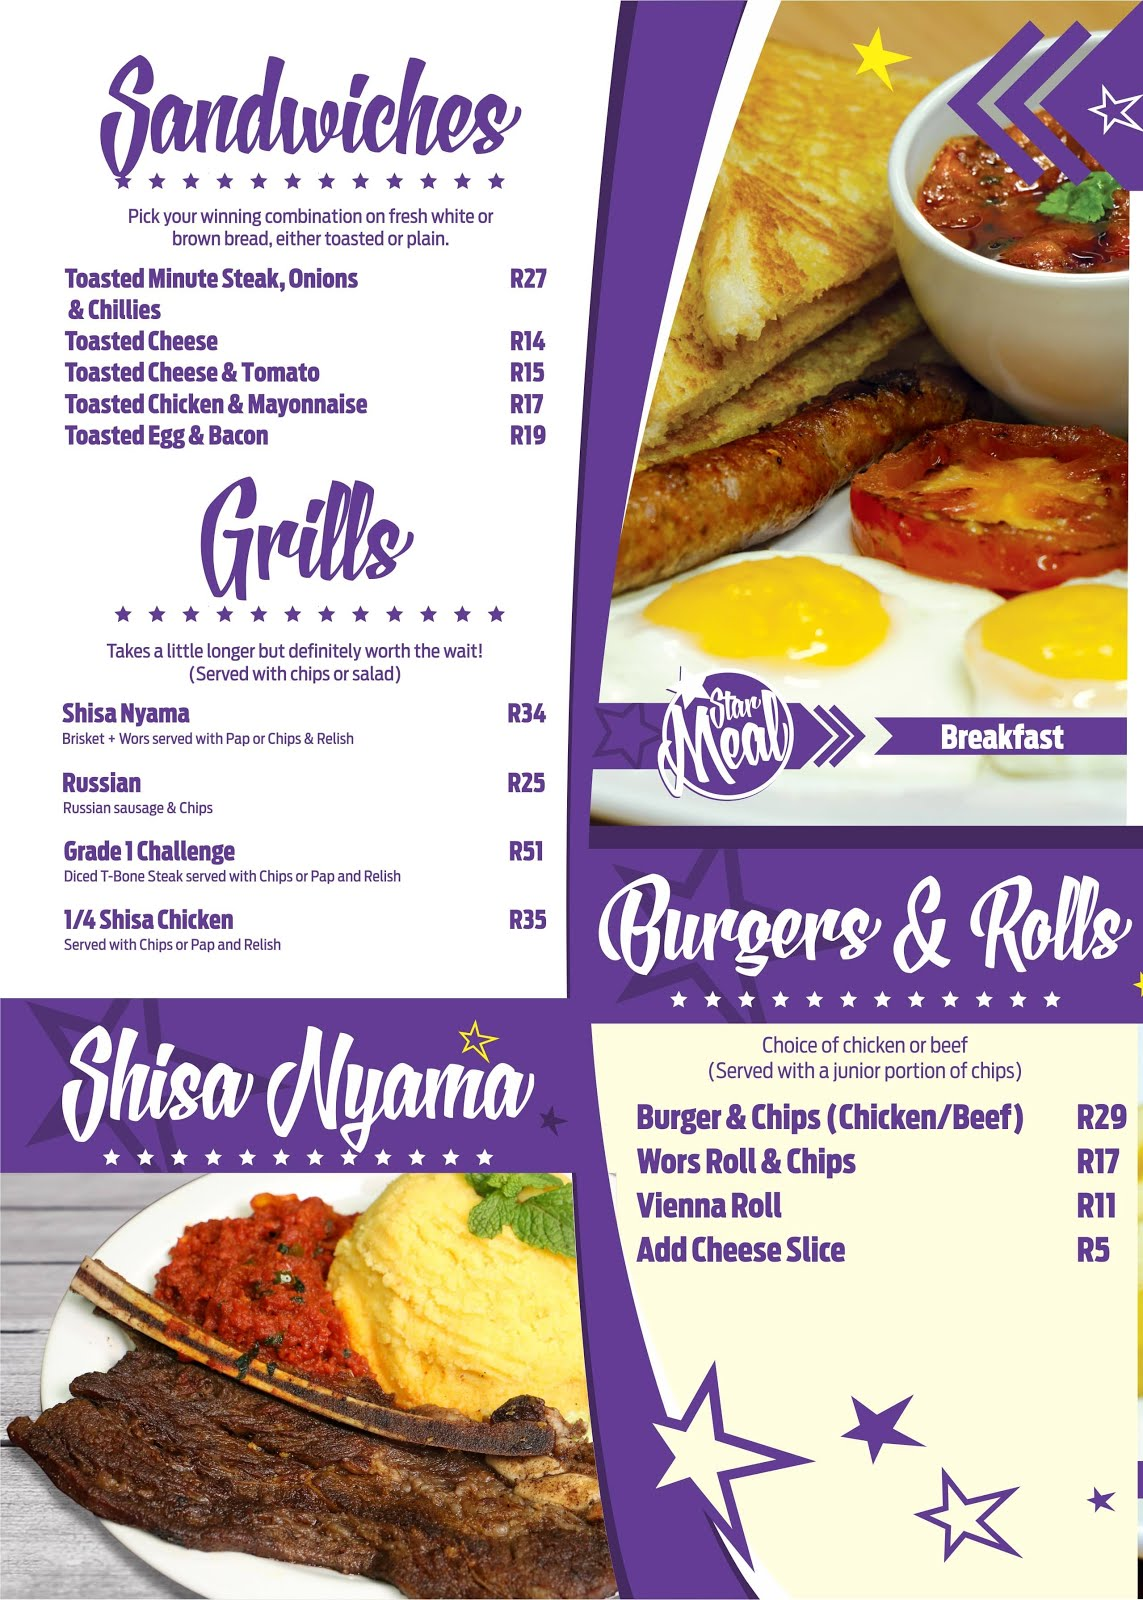 Hollywoodbets Menu - Newton Park - Sandwiches, Grills, Shisa Nyama, Burgers and Rolls